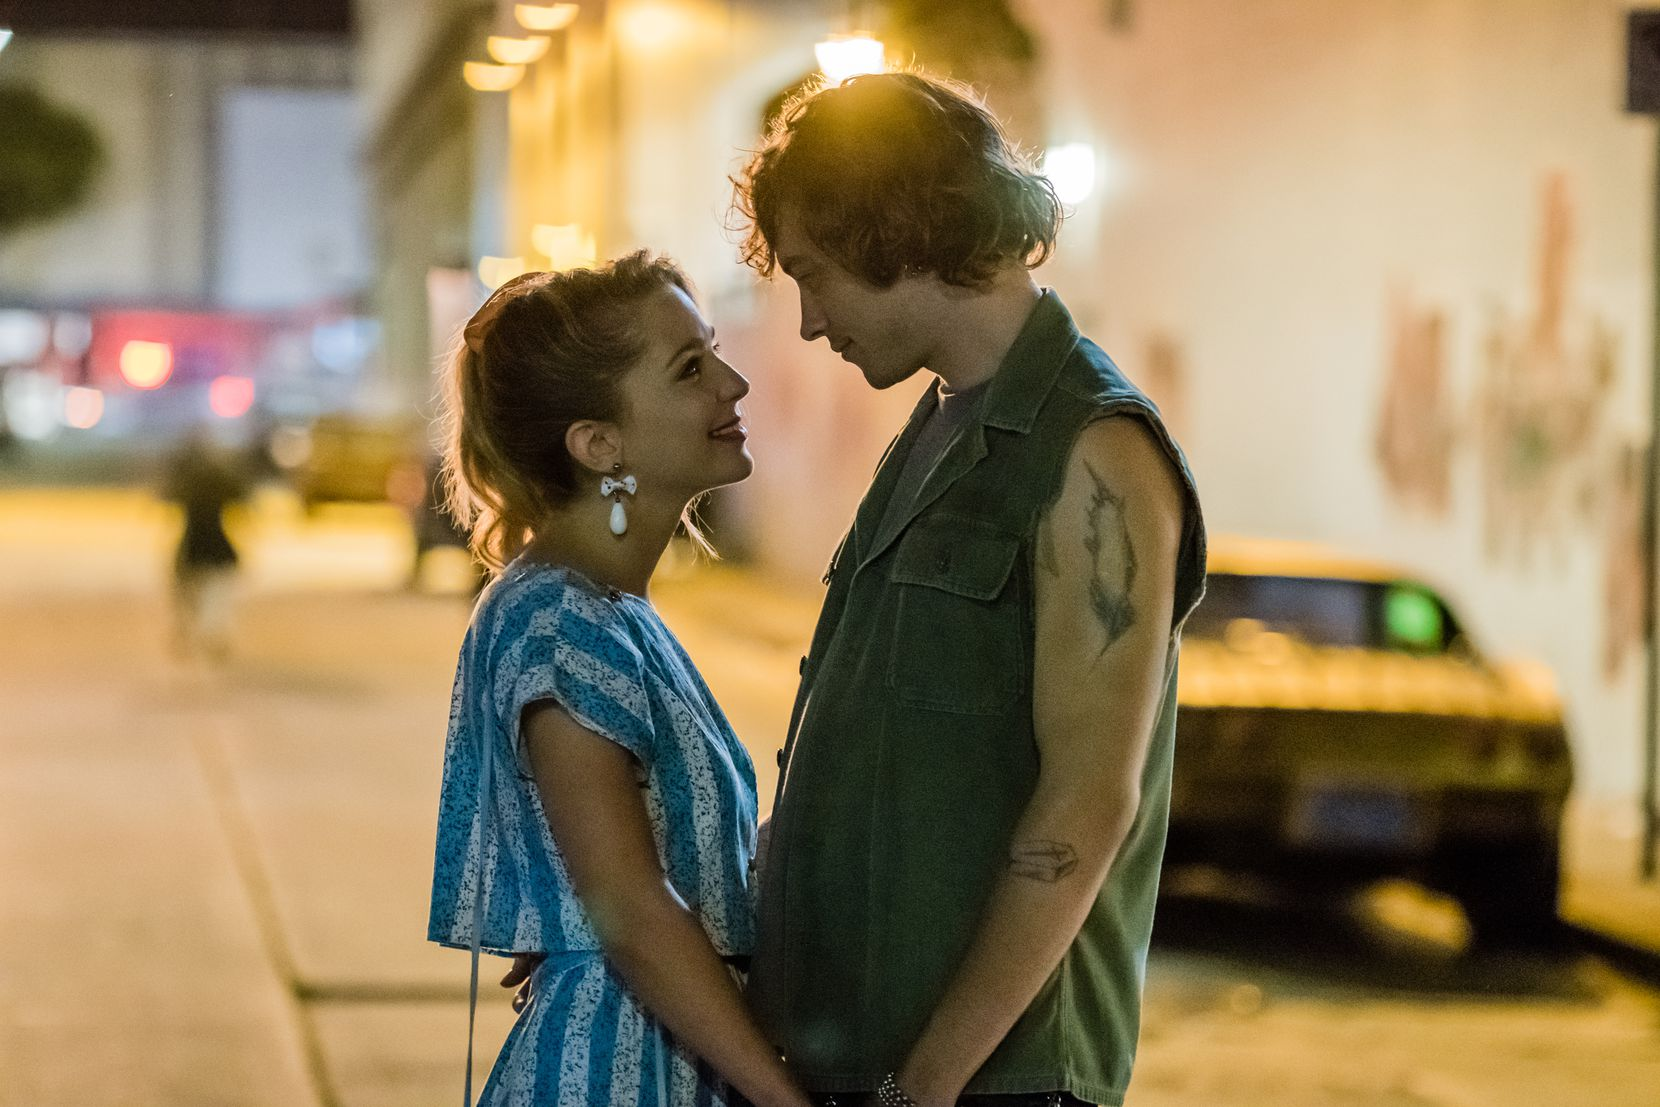 Jessica Rothe and Josh Whitehouse star in the new movie, Valley Girl, written by Dallas' own Amy Talkington.